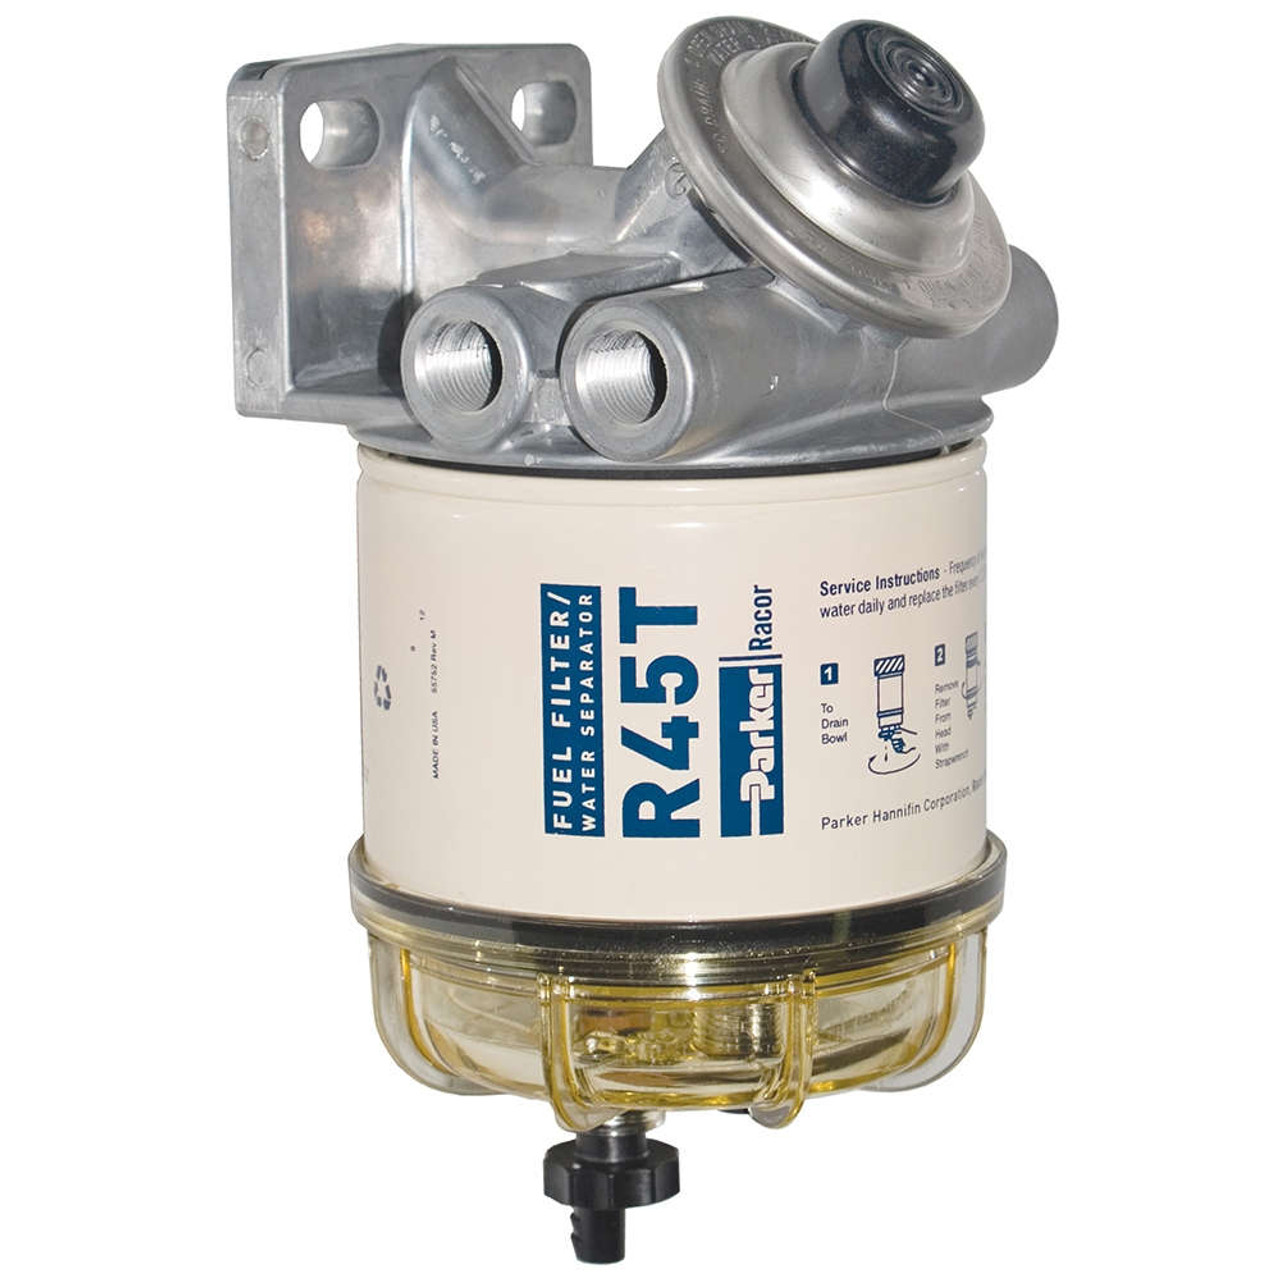 racor 400 series 45 gph diesel spin on fuel filter 10 micron 6 [ 1000 x 1000 Pixel ]